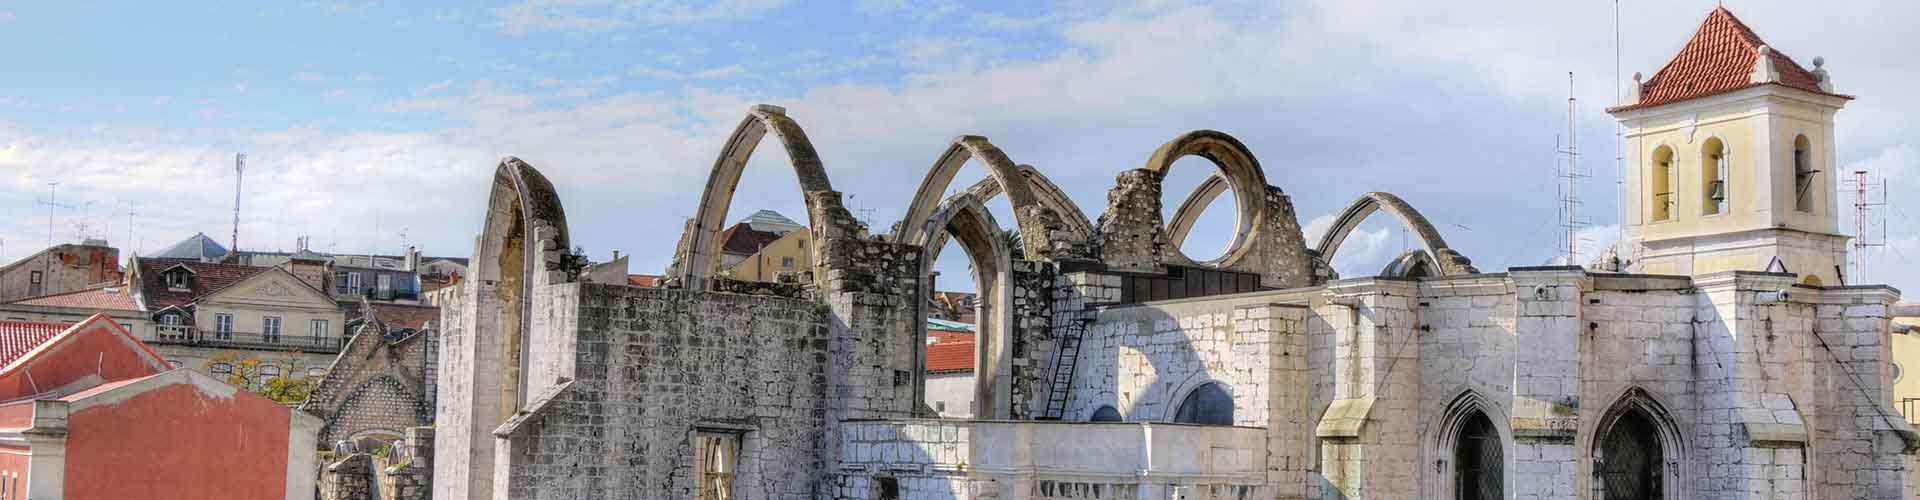 Lisbon – Hostels close to Carmo Convent. Maps for Lisbon, Photos and Reviews for each hostel in Lisbon.